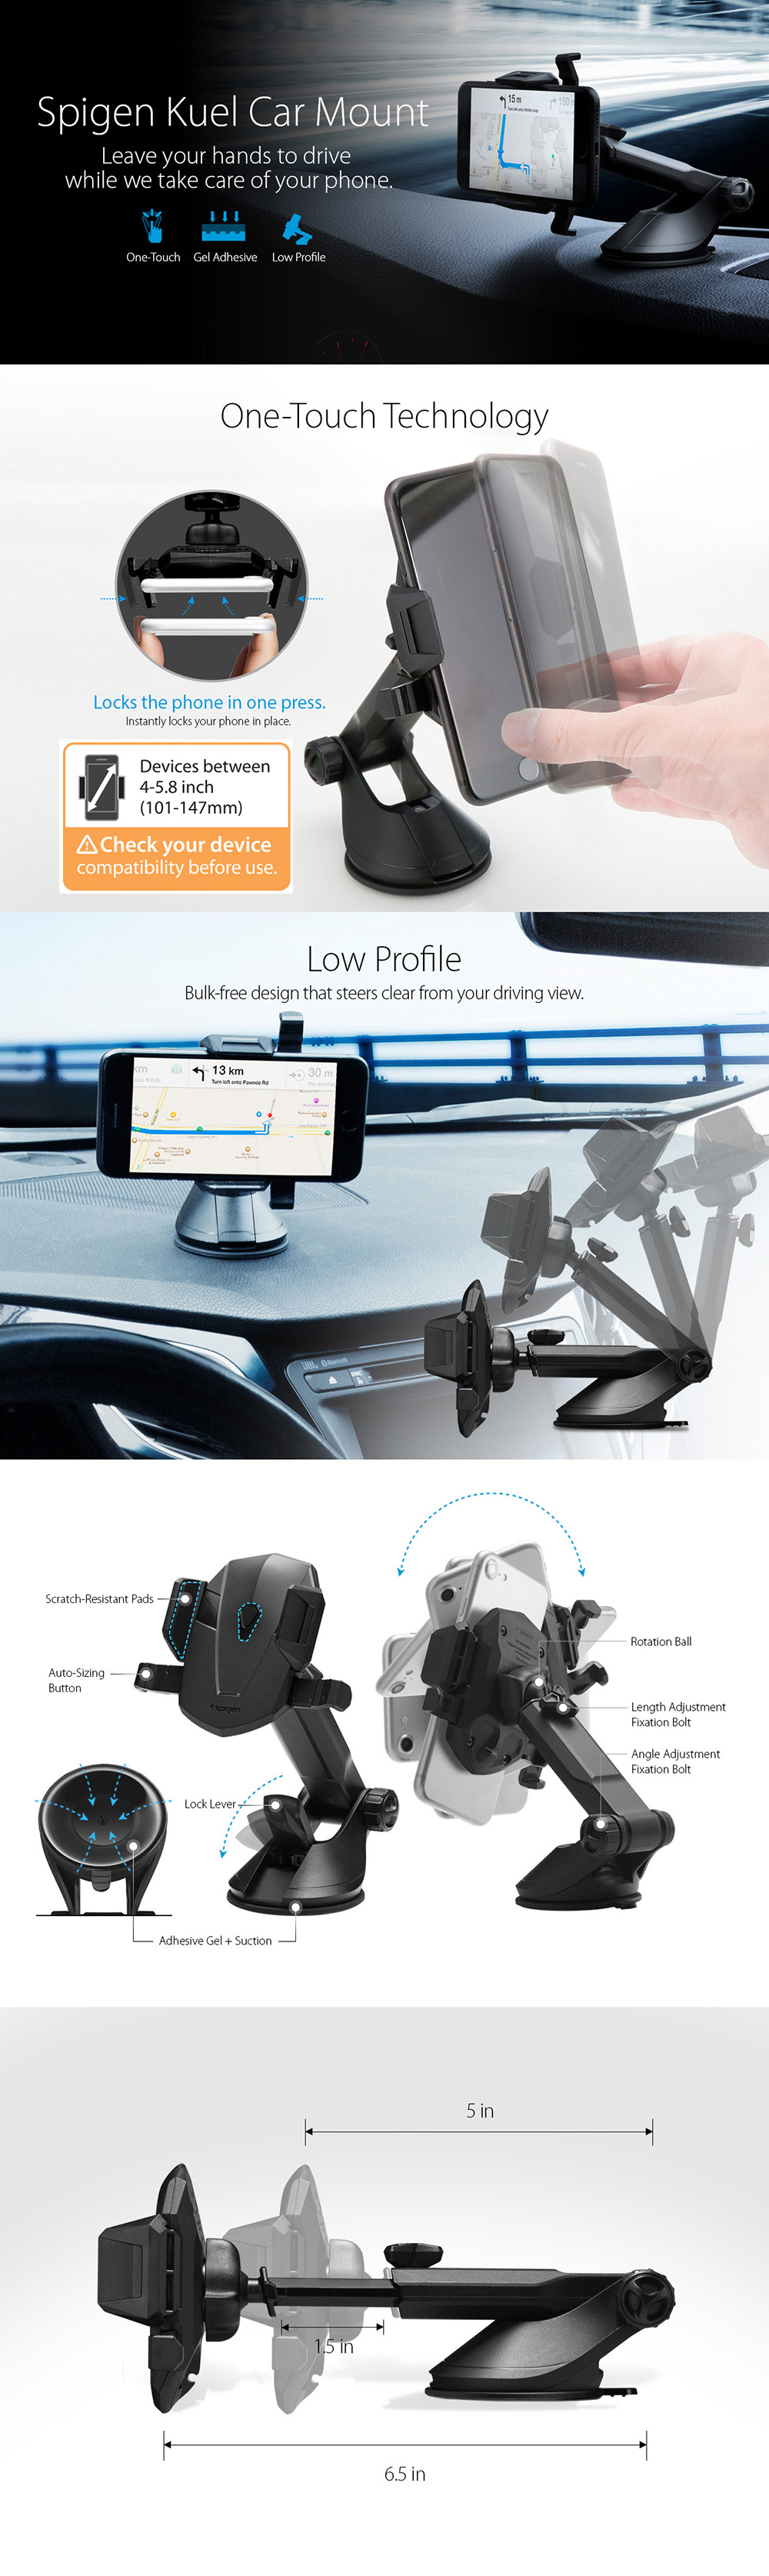 Every Need Want Day Spigen Car Holder Cradle Universal Kuel Turbulence S40 2 Mount Iridium Silver Color Steel Grey Black Lunar Blue